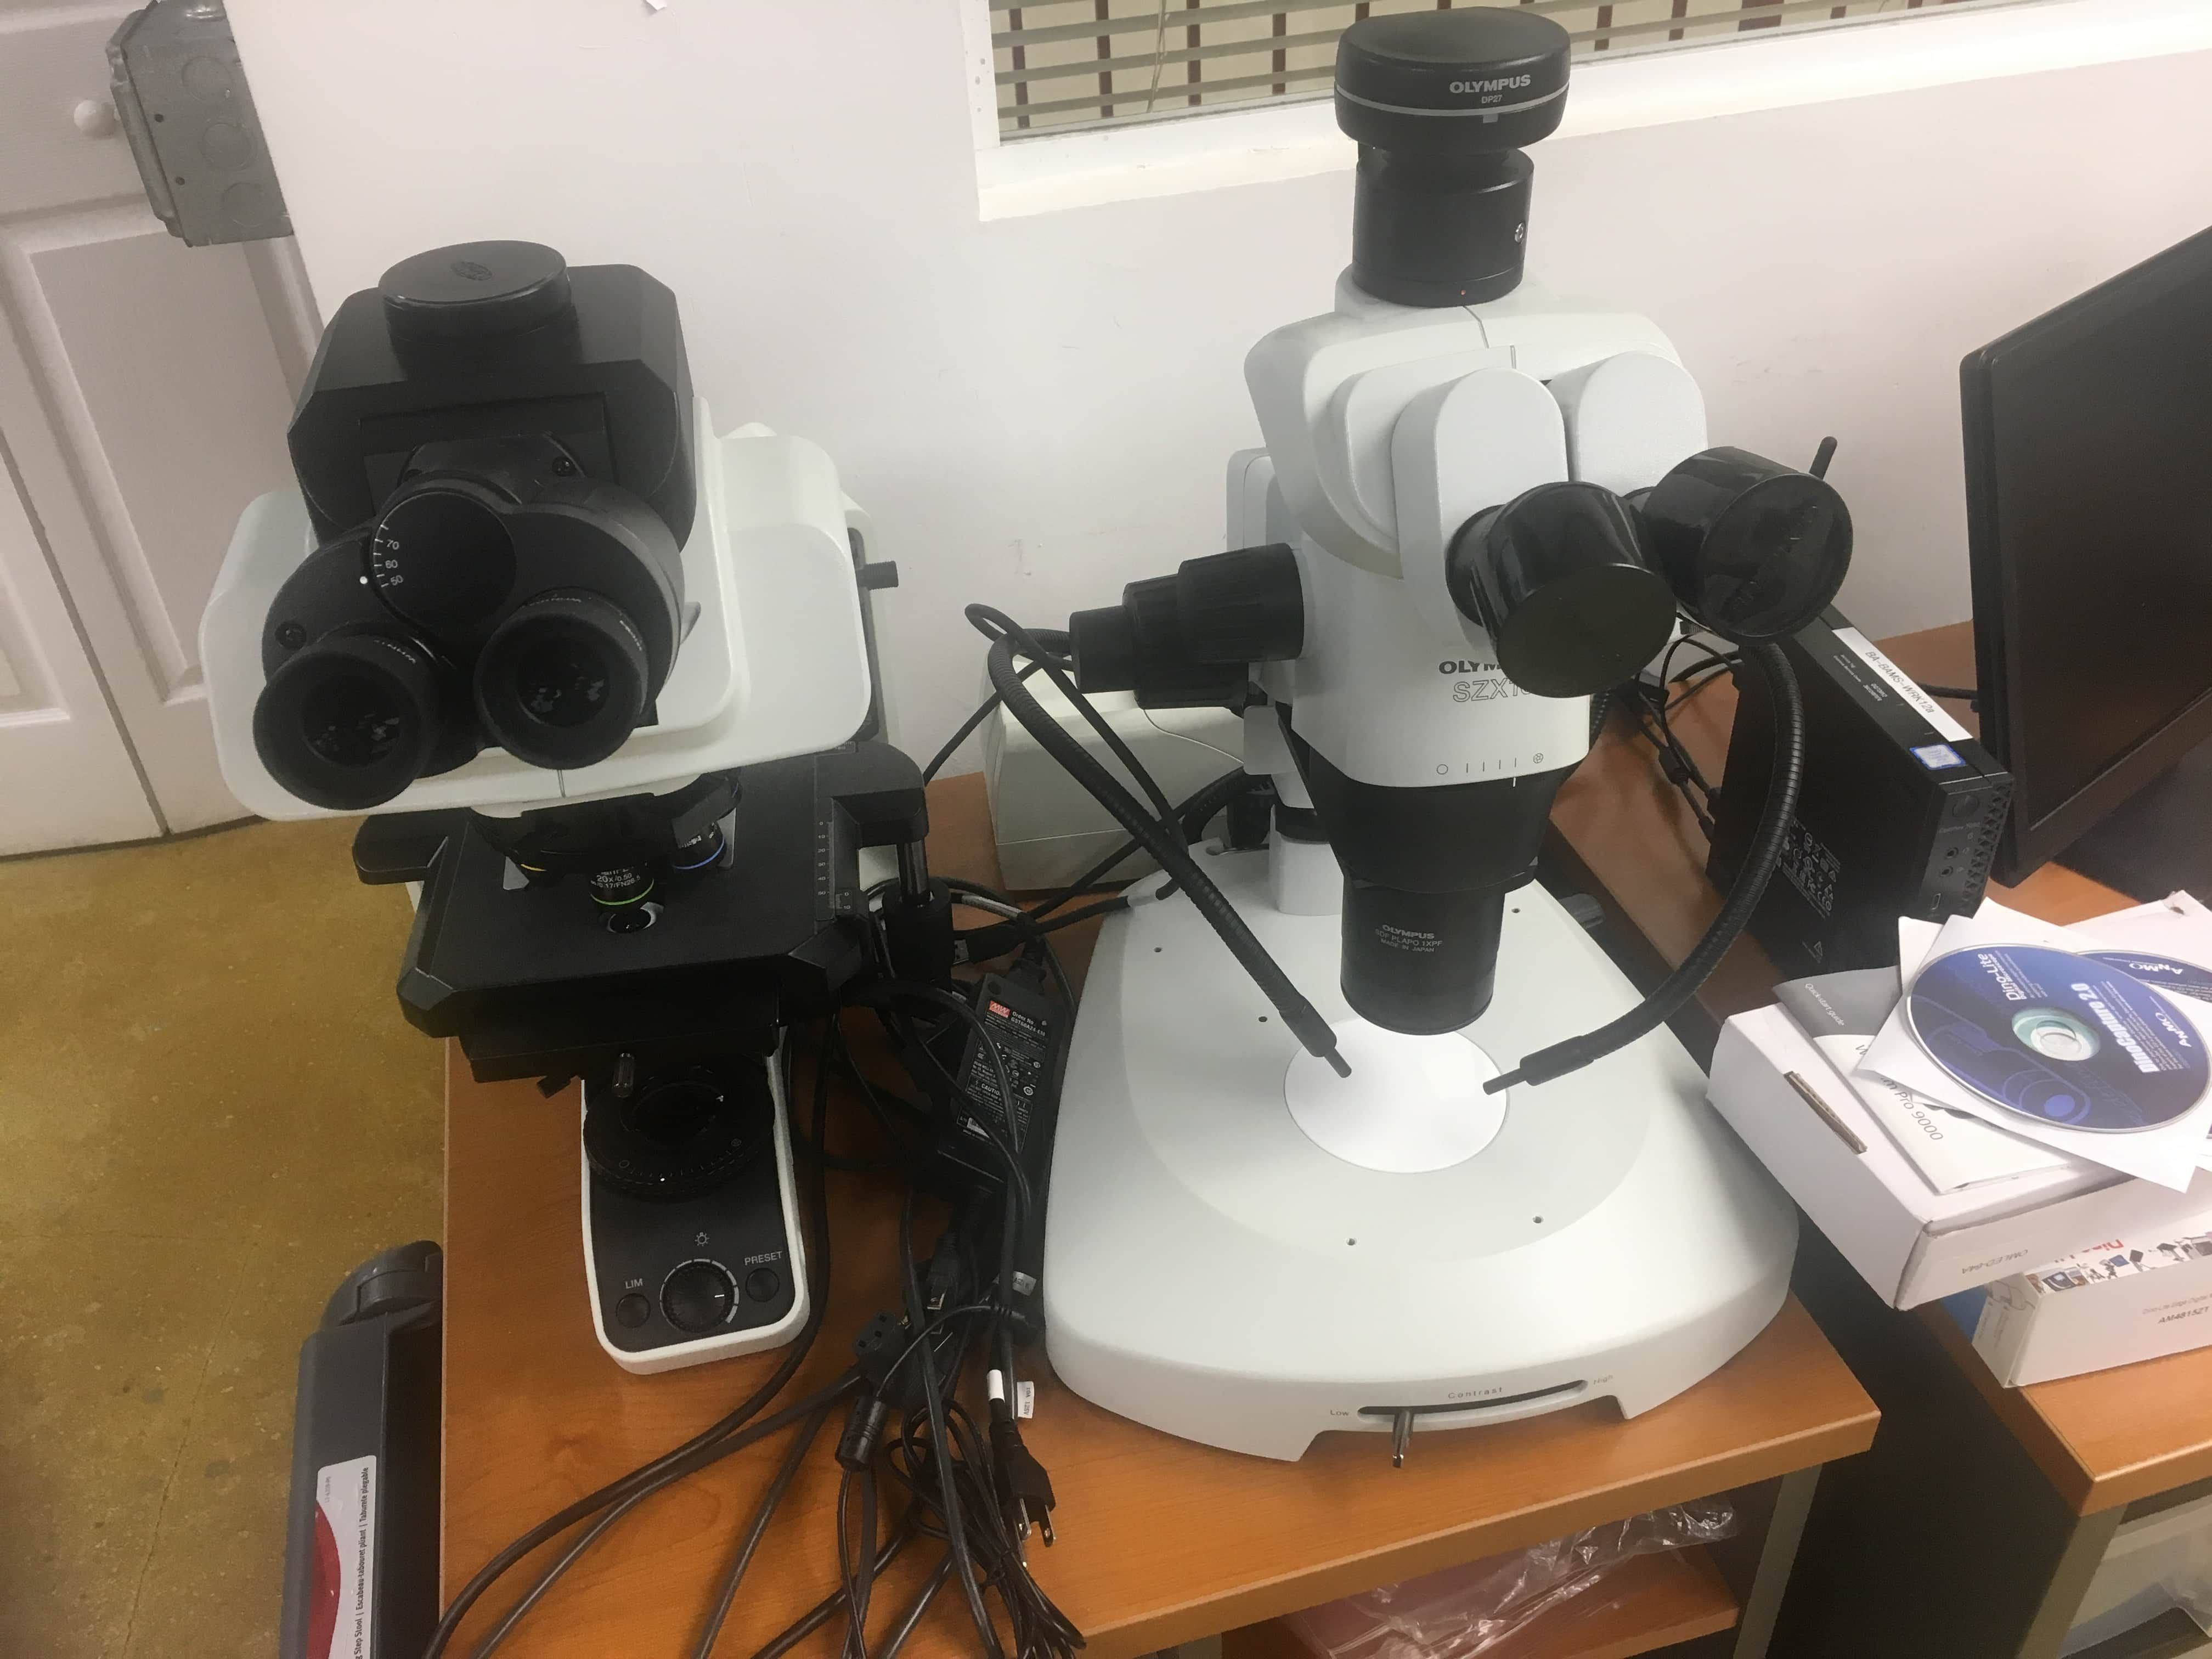 Barely used, well kept Olympus SZX16 Stereo Microscope, BX53 LED Microscope with Polarized Light Accessories and DP27 Digital Camera for sale as a set from Beta Analytic Inc.